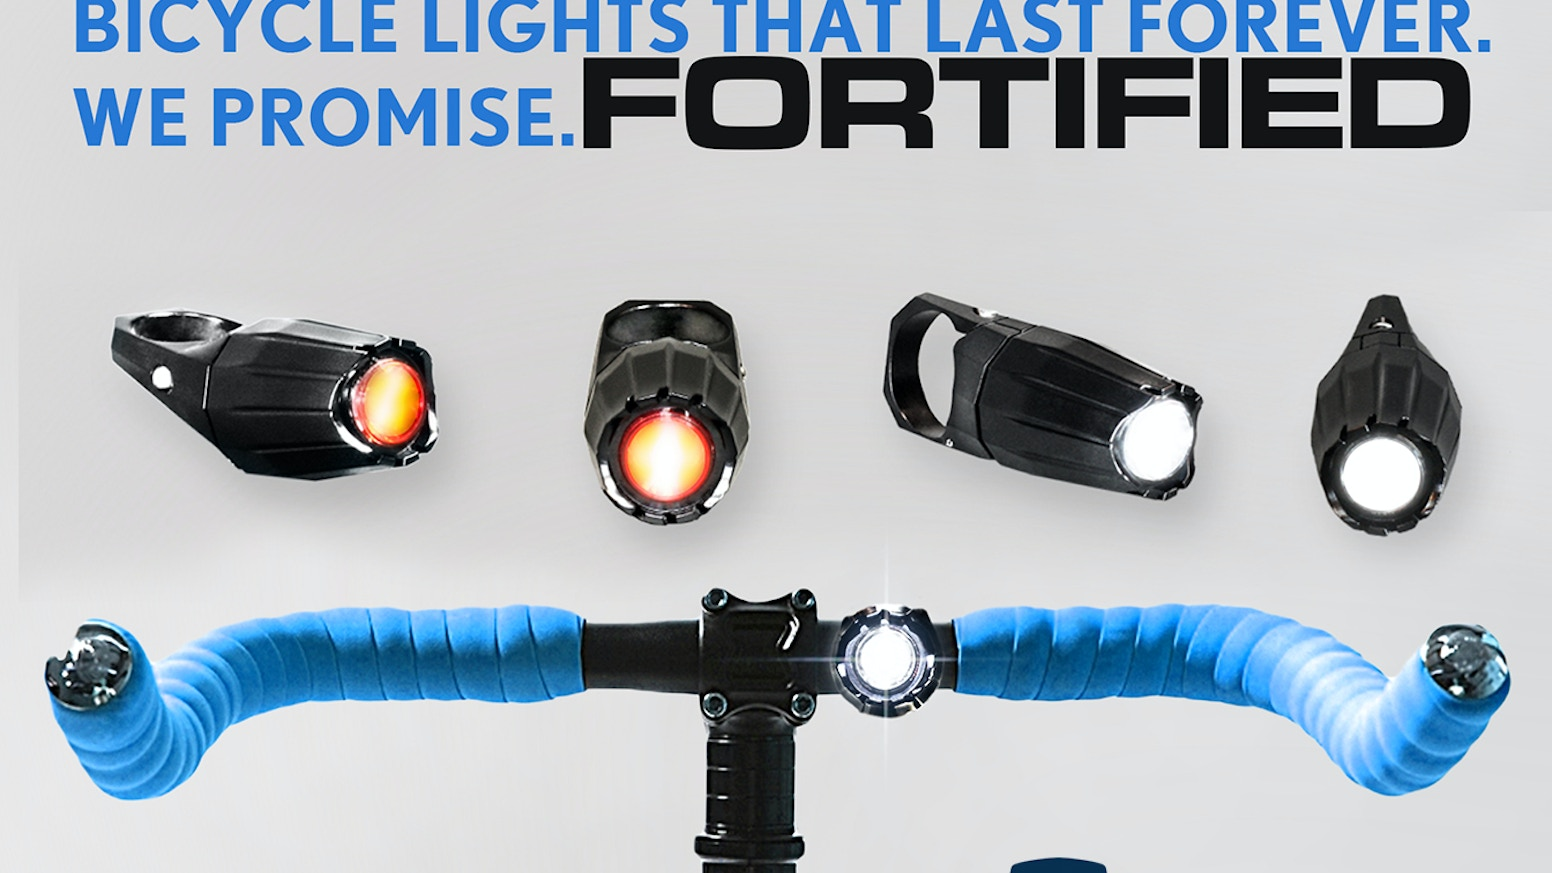 Afterburner & Aviator: Indestructible, theft-resistant bike lights with a Lifetime, No-Matter-What Promise. Fortified Bicycle Alliance.